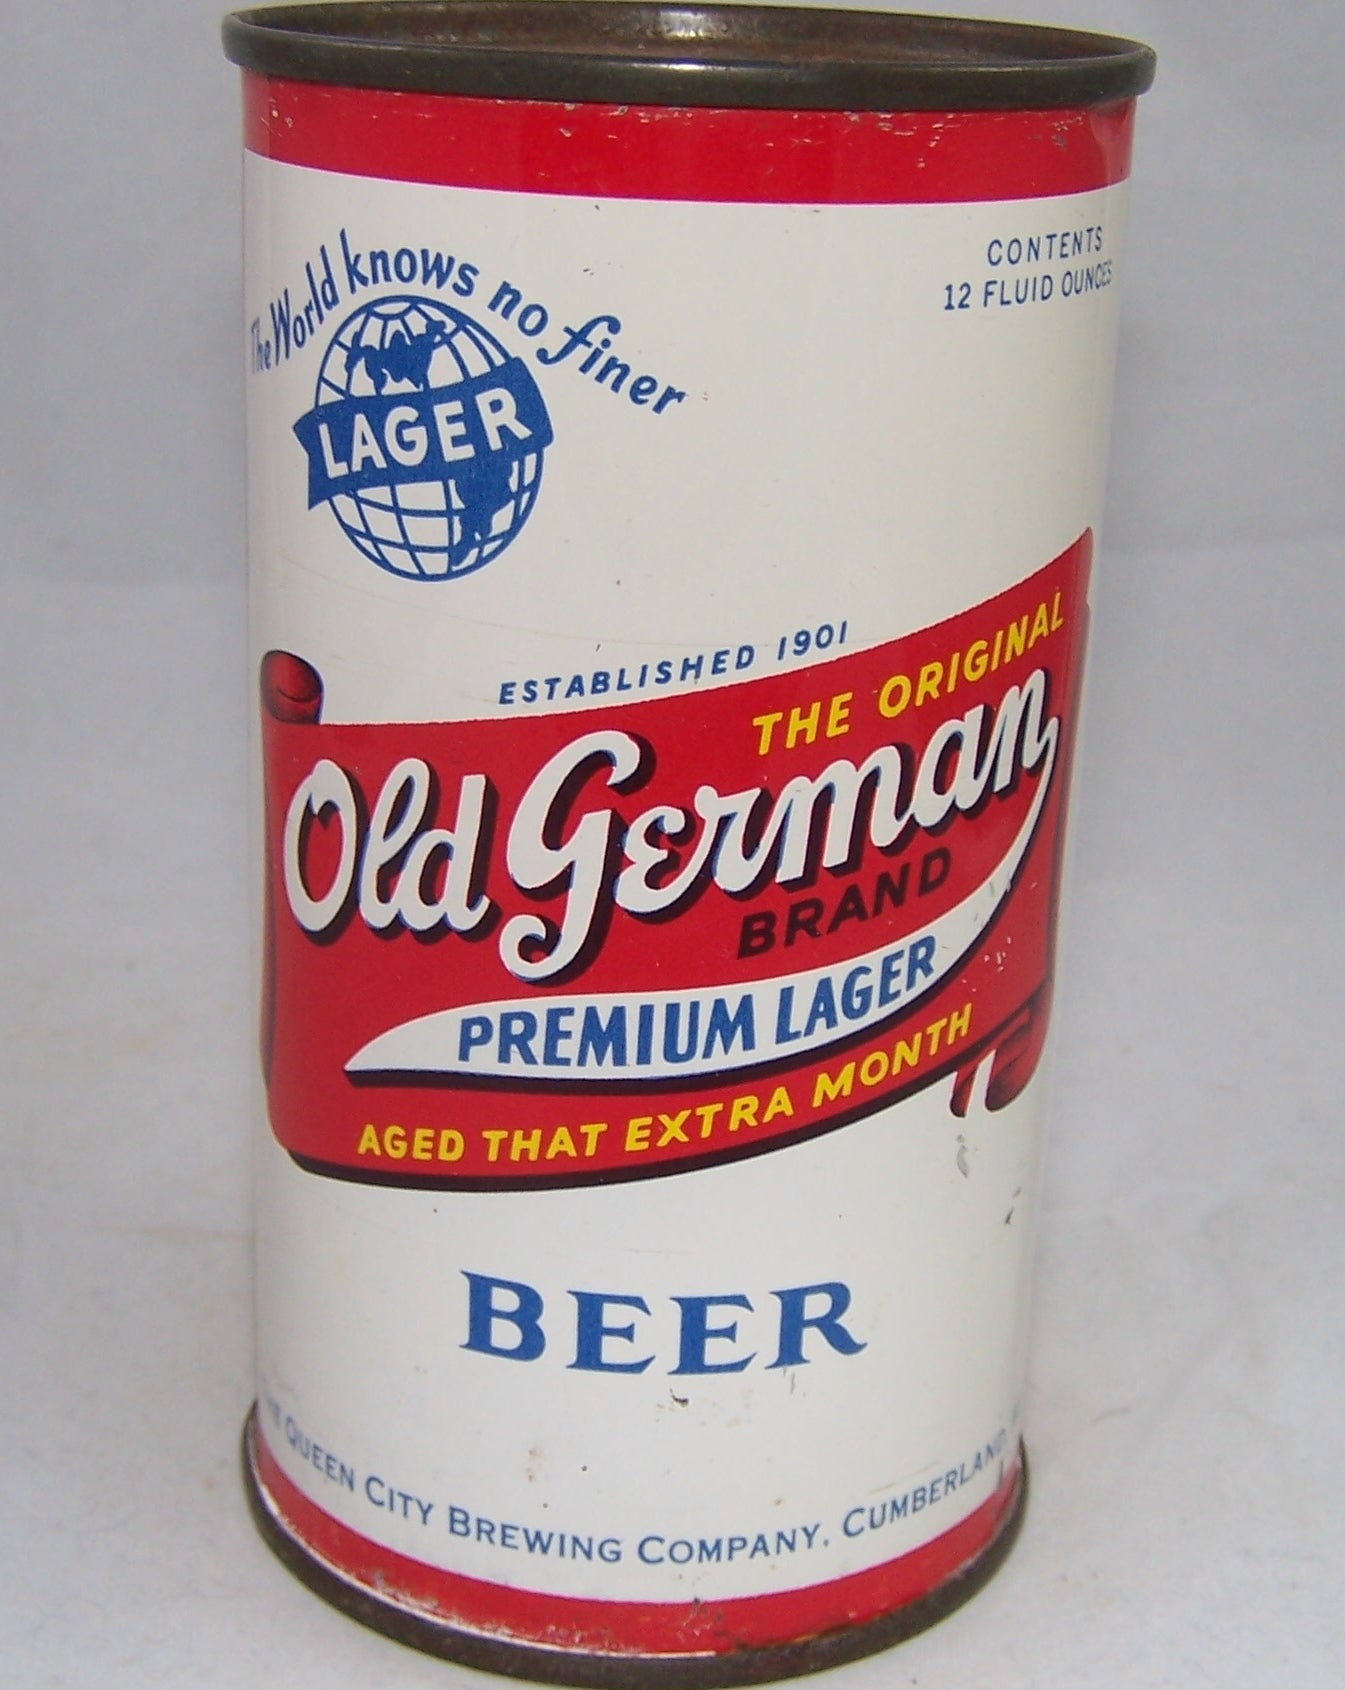 Old German Premium Lager, USBC 106-26, Grade 1/1+ Sold on 03/03/18